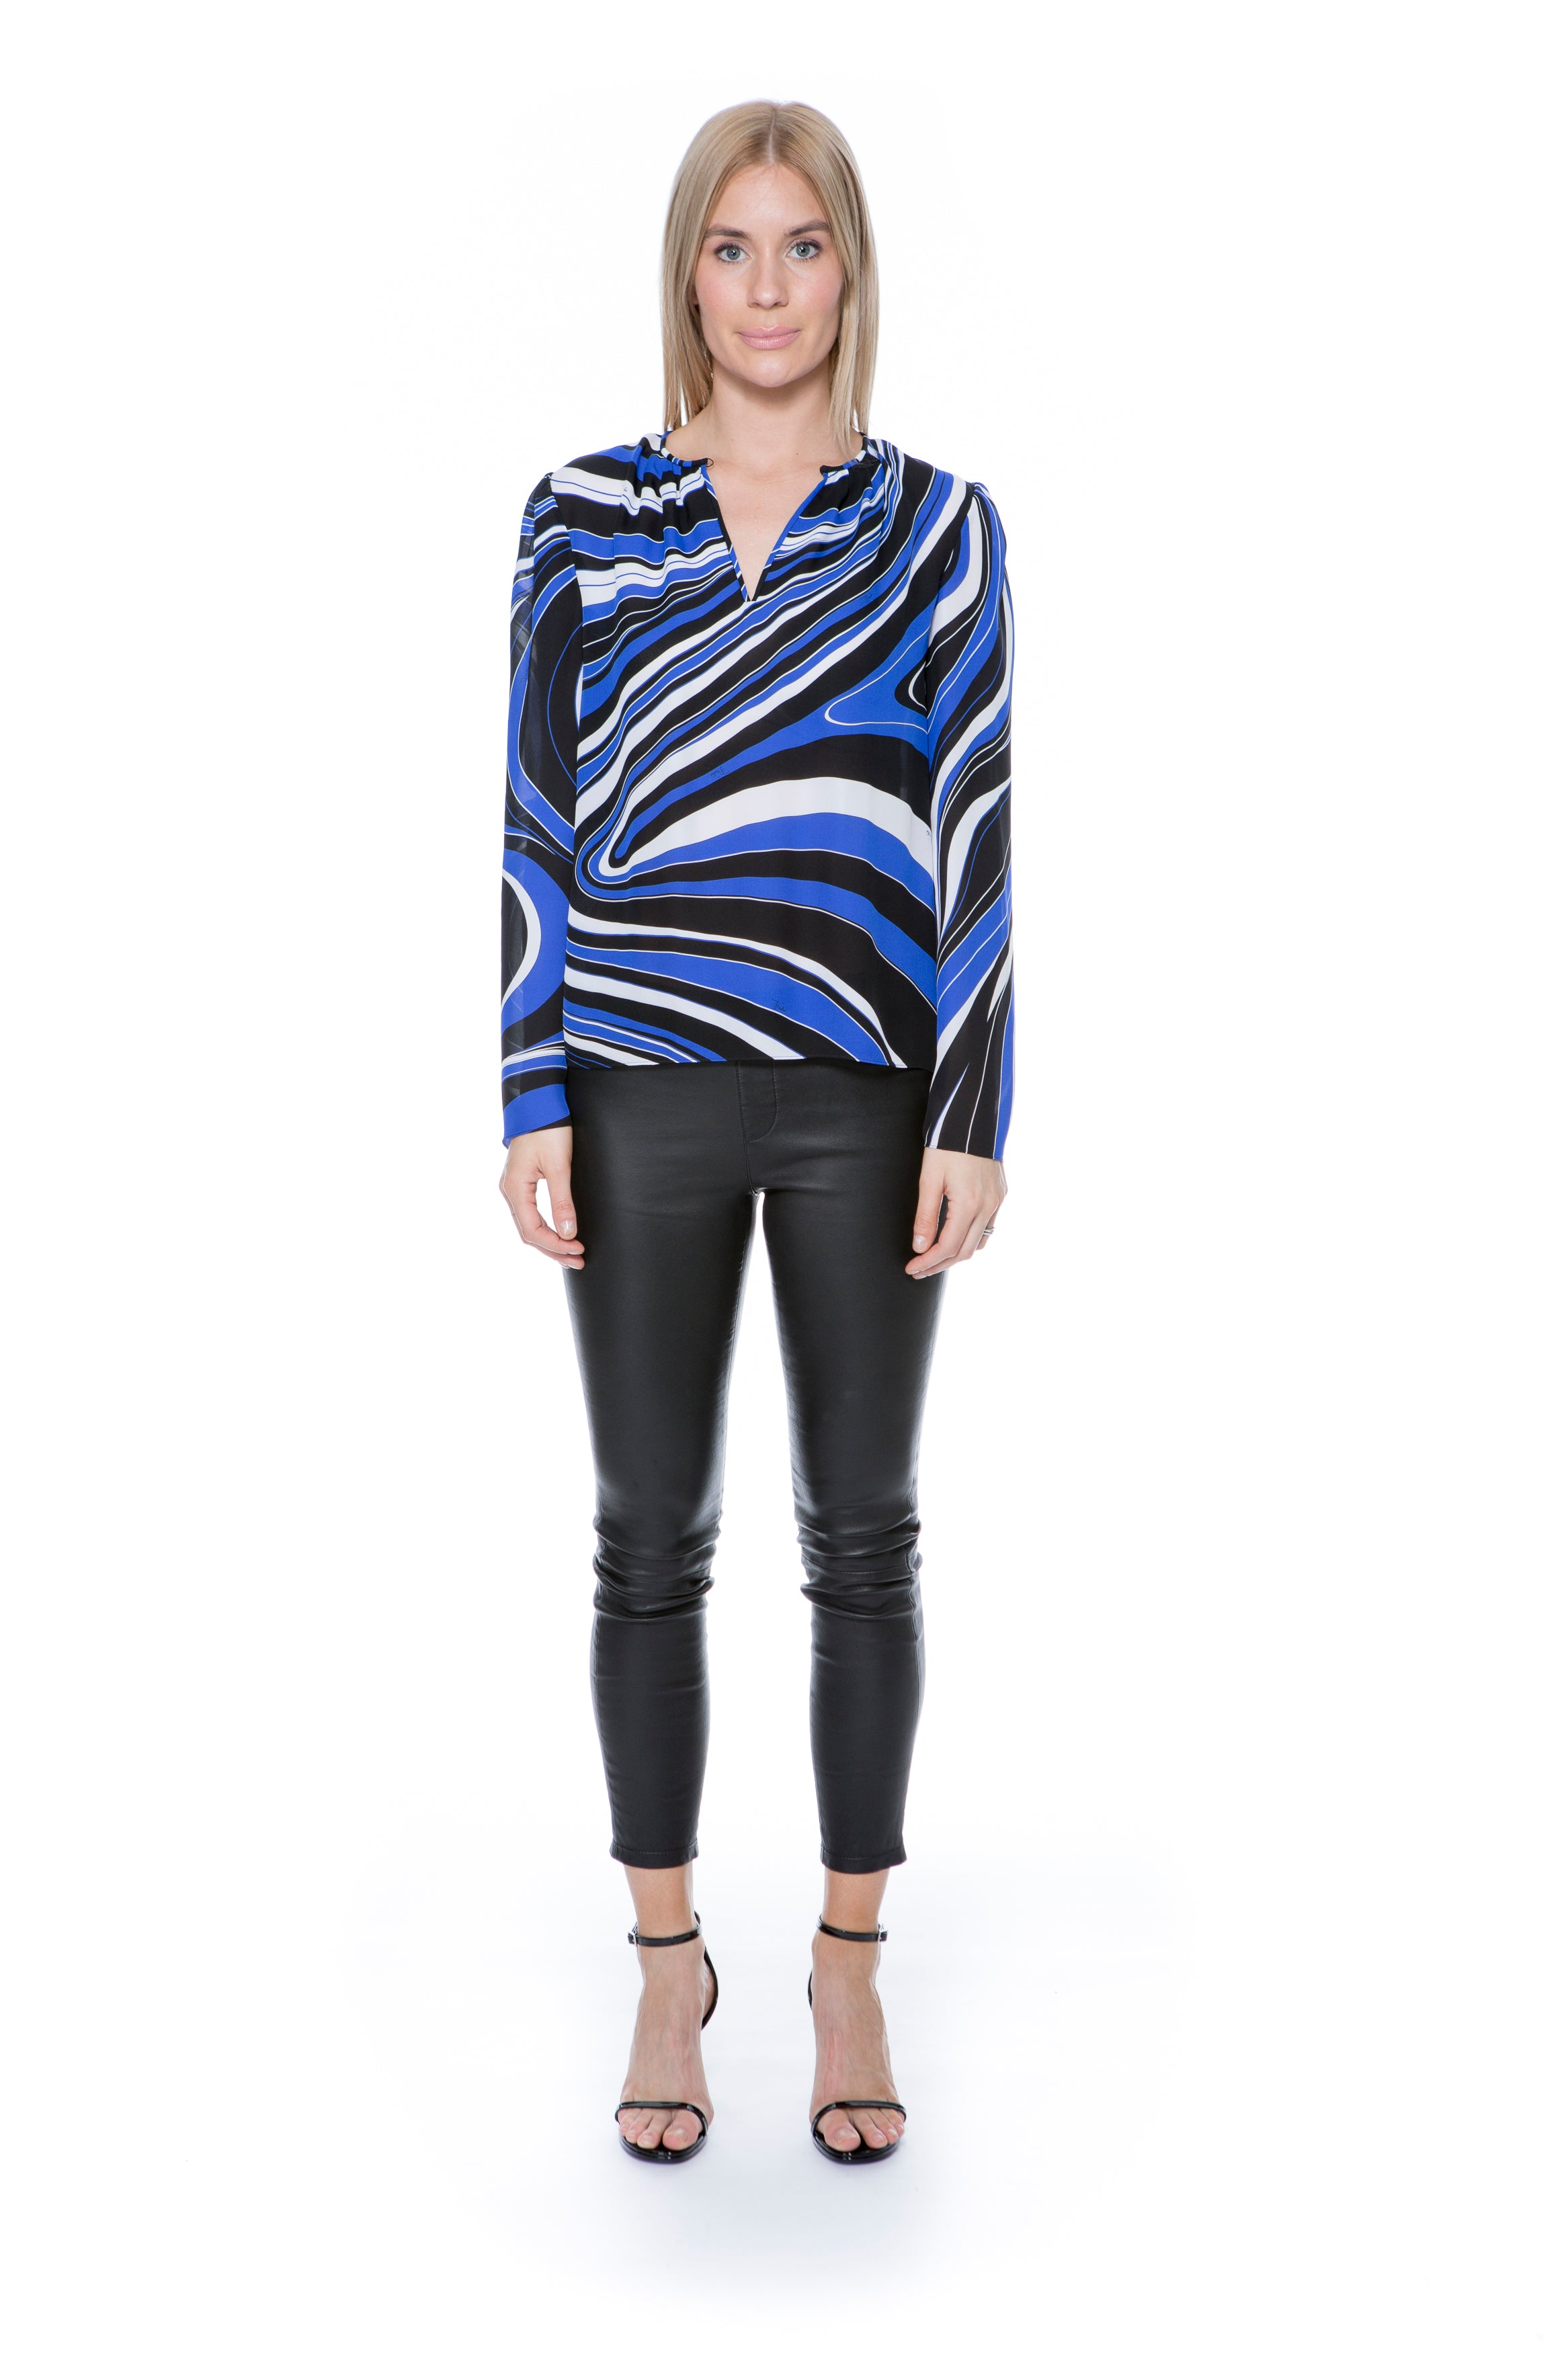 BLUE AND BLACK PRINTED SHIRT